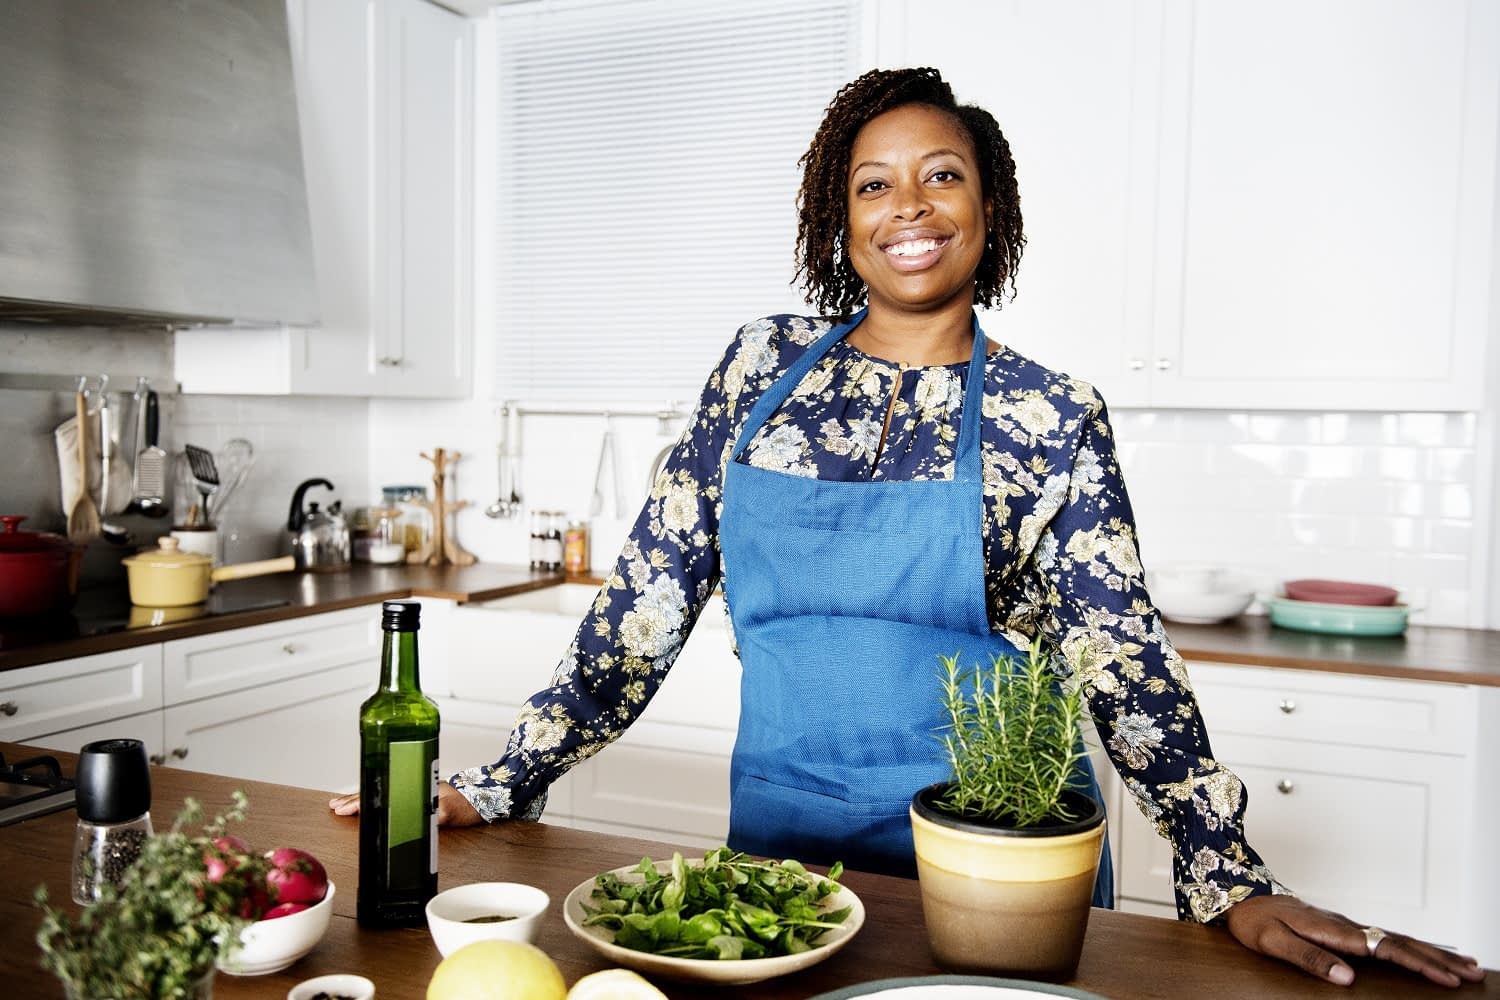 woman in the kitchen with herbs